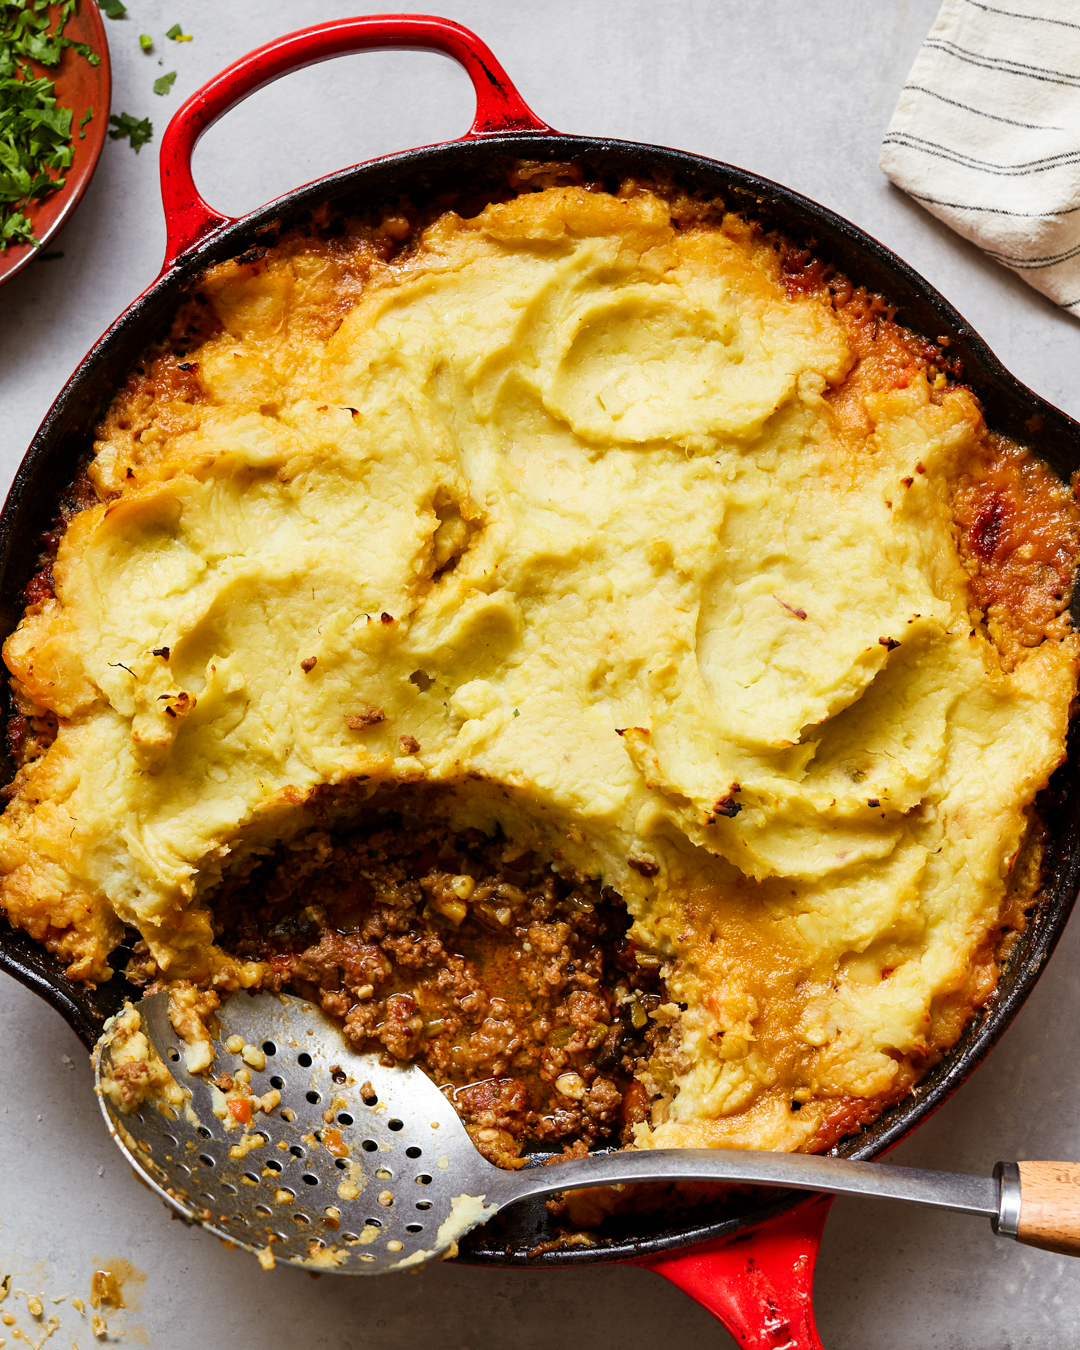 Shepherd's Pie whole30 Paleo Primal Gourmet Gluten Free Easy Casserole Recipe